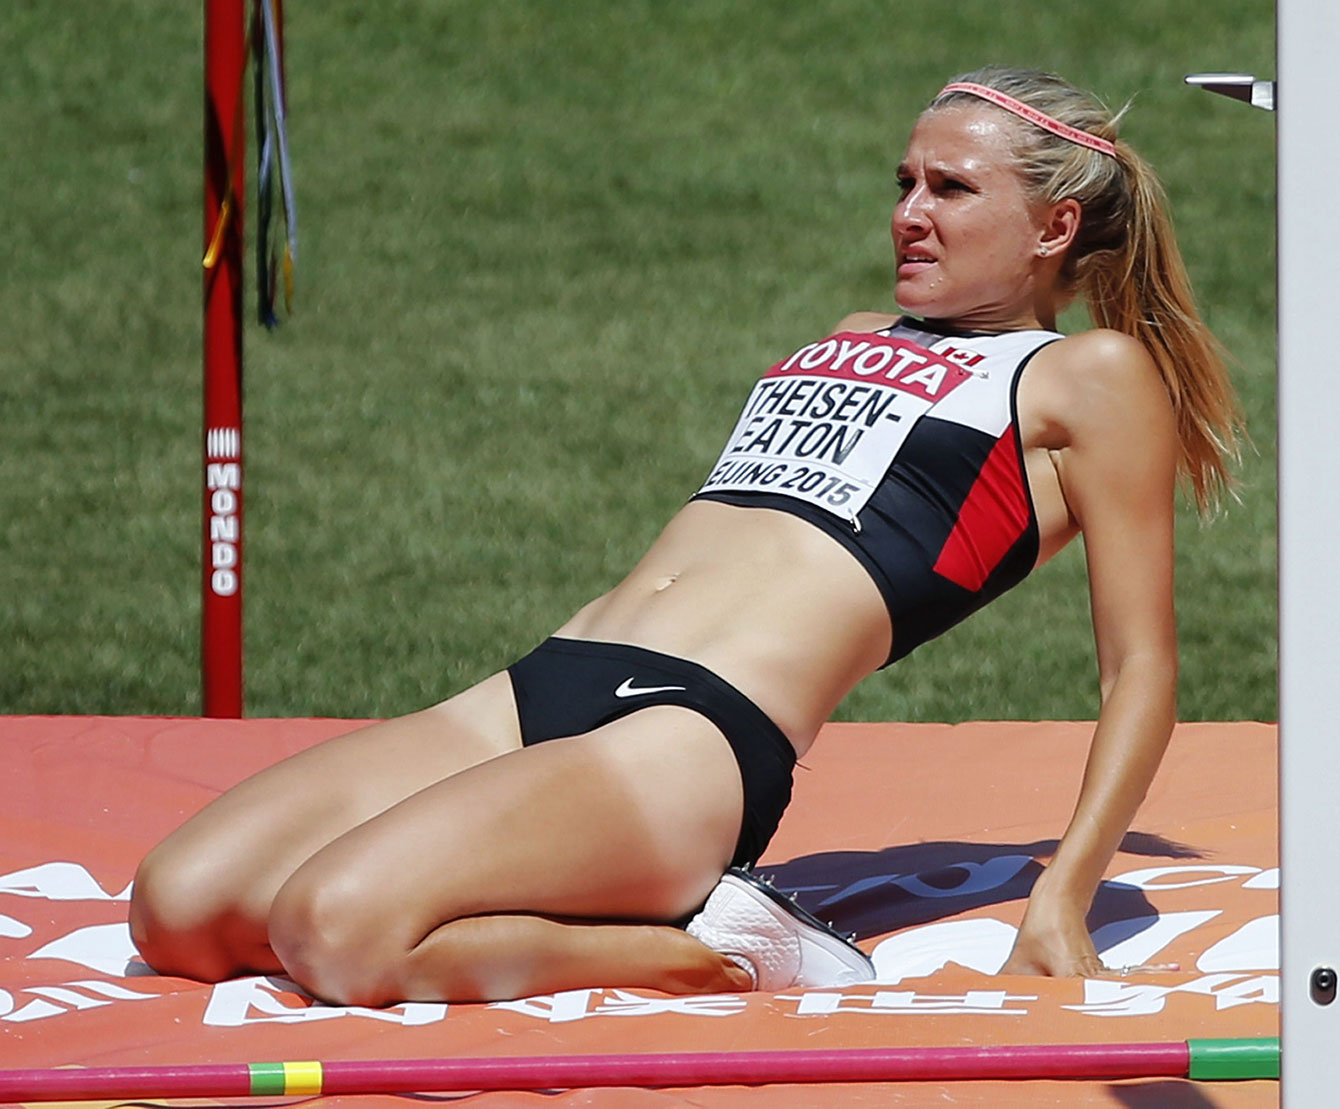 Brianne Theisen-Eaton reacts after failing to clear the 1.83m high jump bar in the heptathlon at the IAAF World Championships in Athletics in Beijing on August 22, 2015.